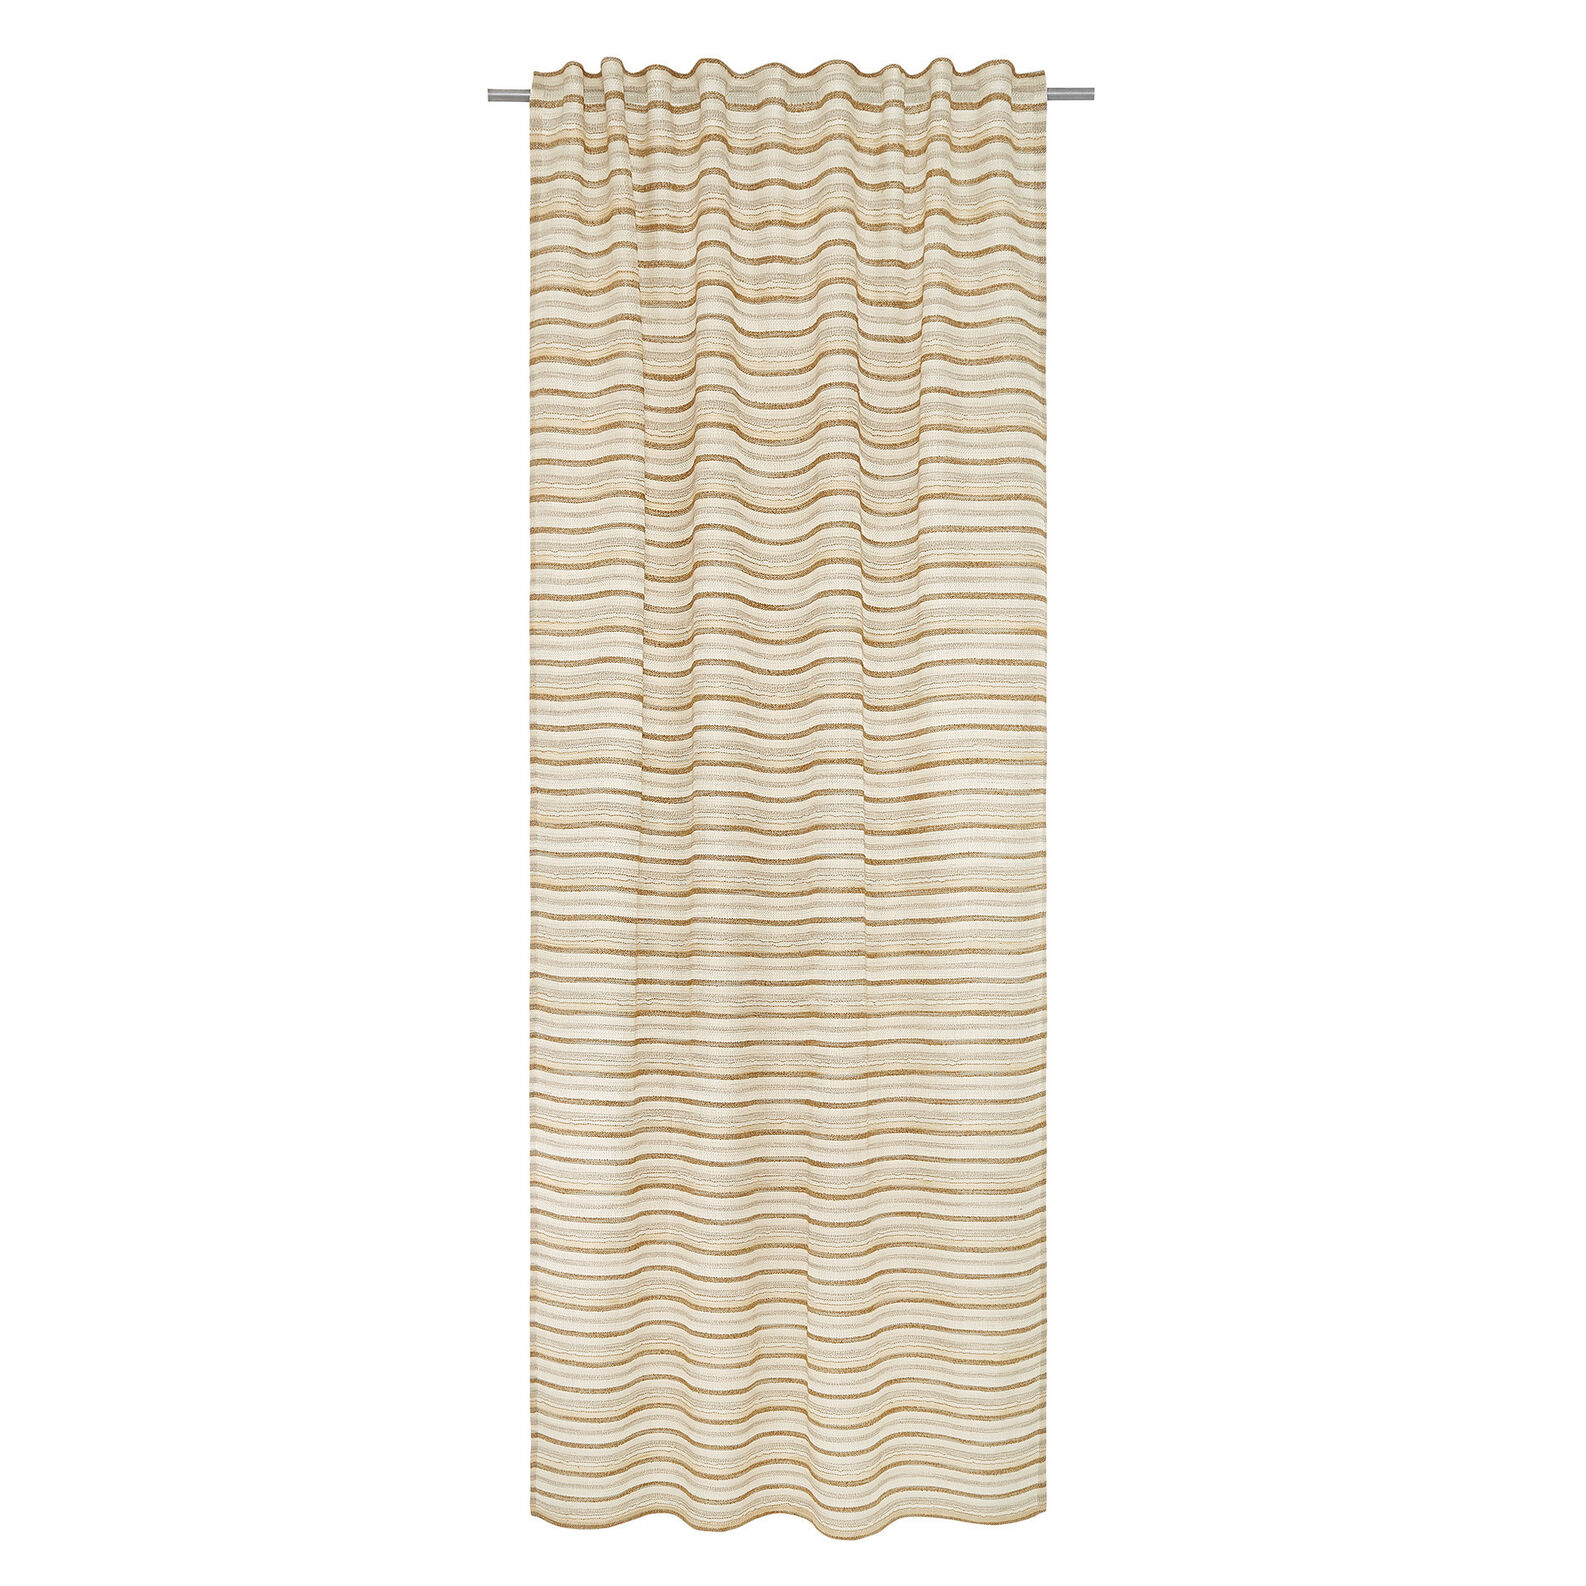 Gauze curtain with striped jacquard design and concealed loops